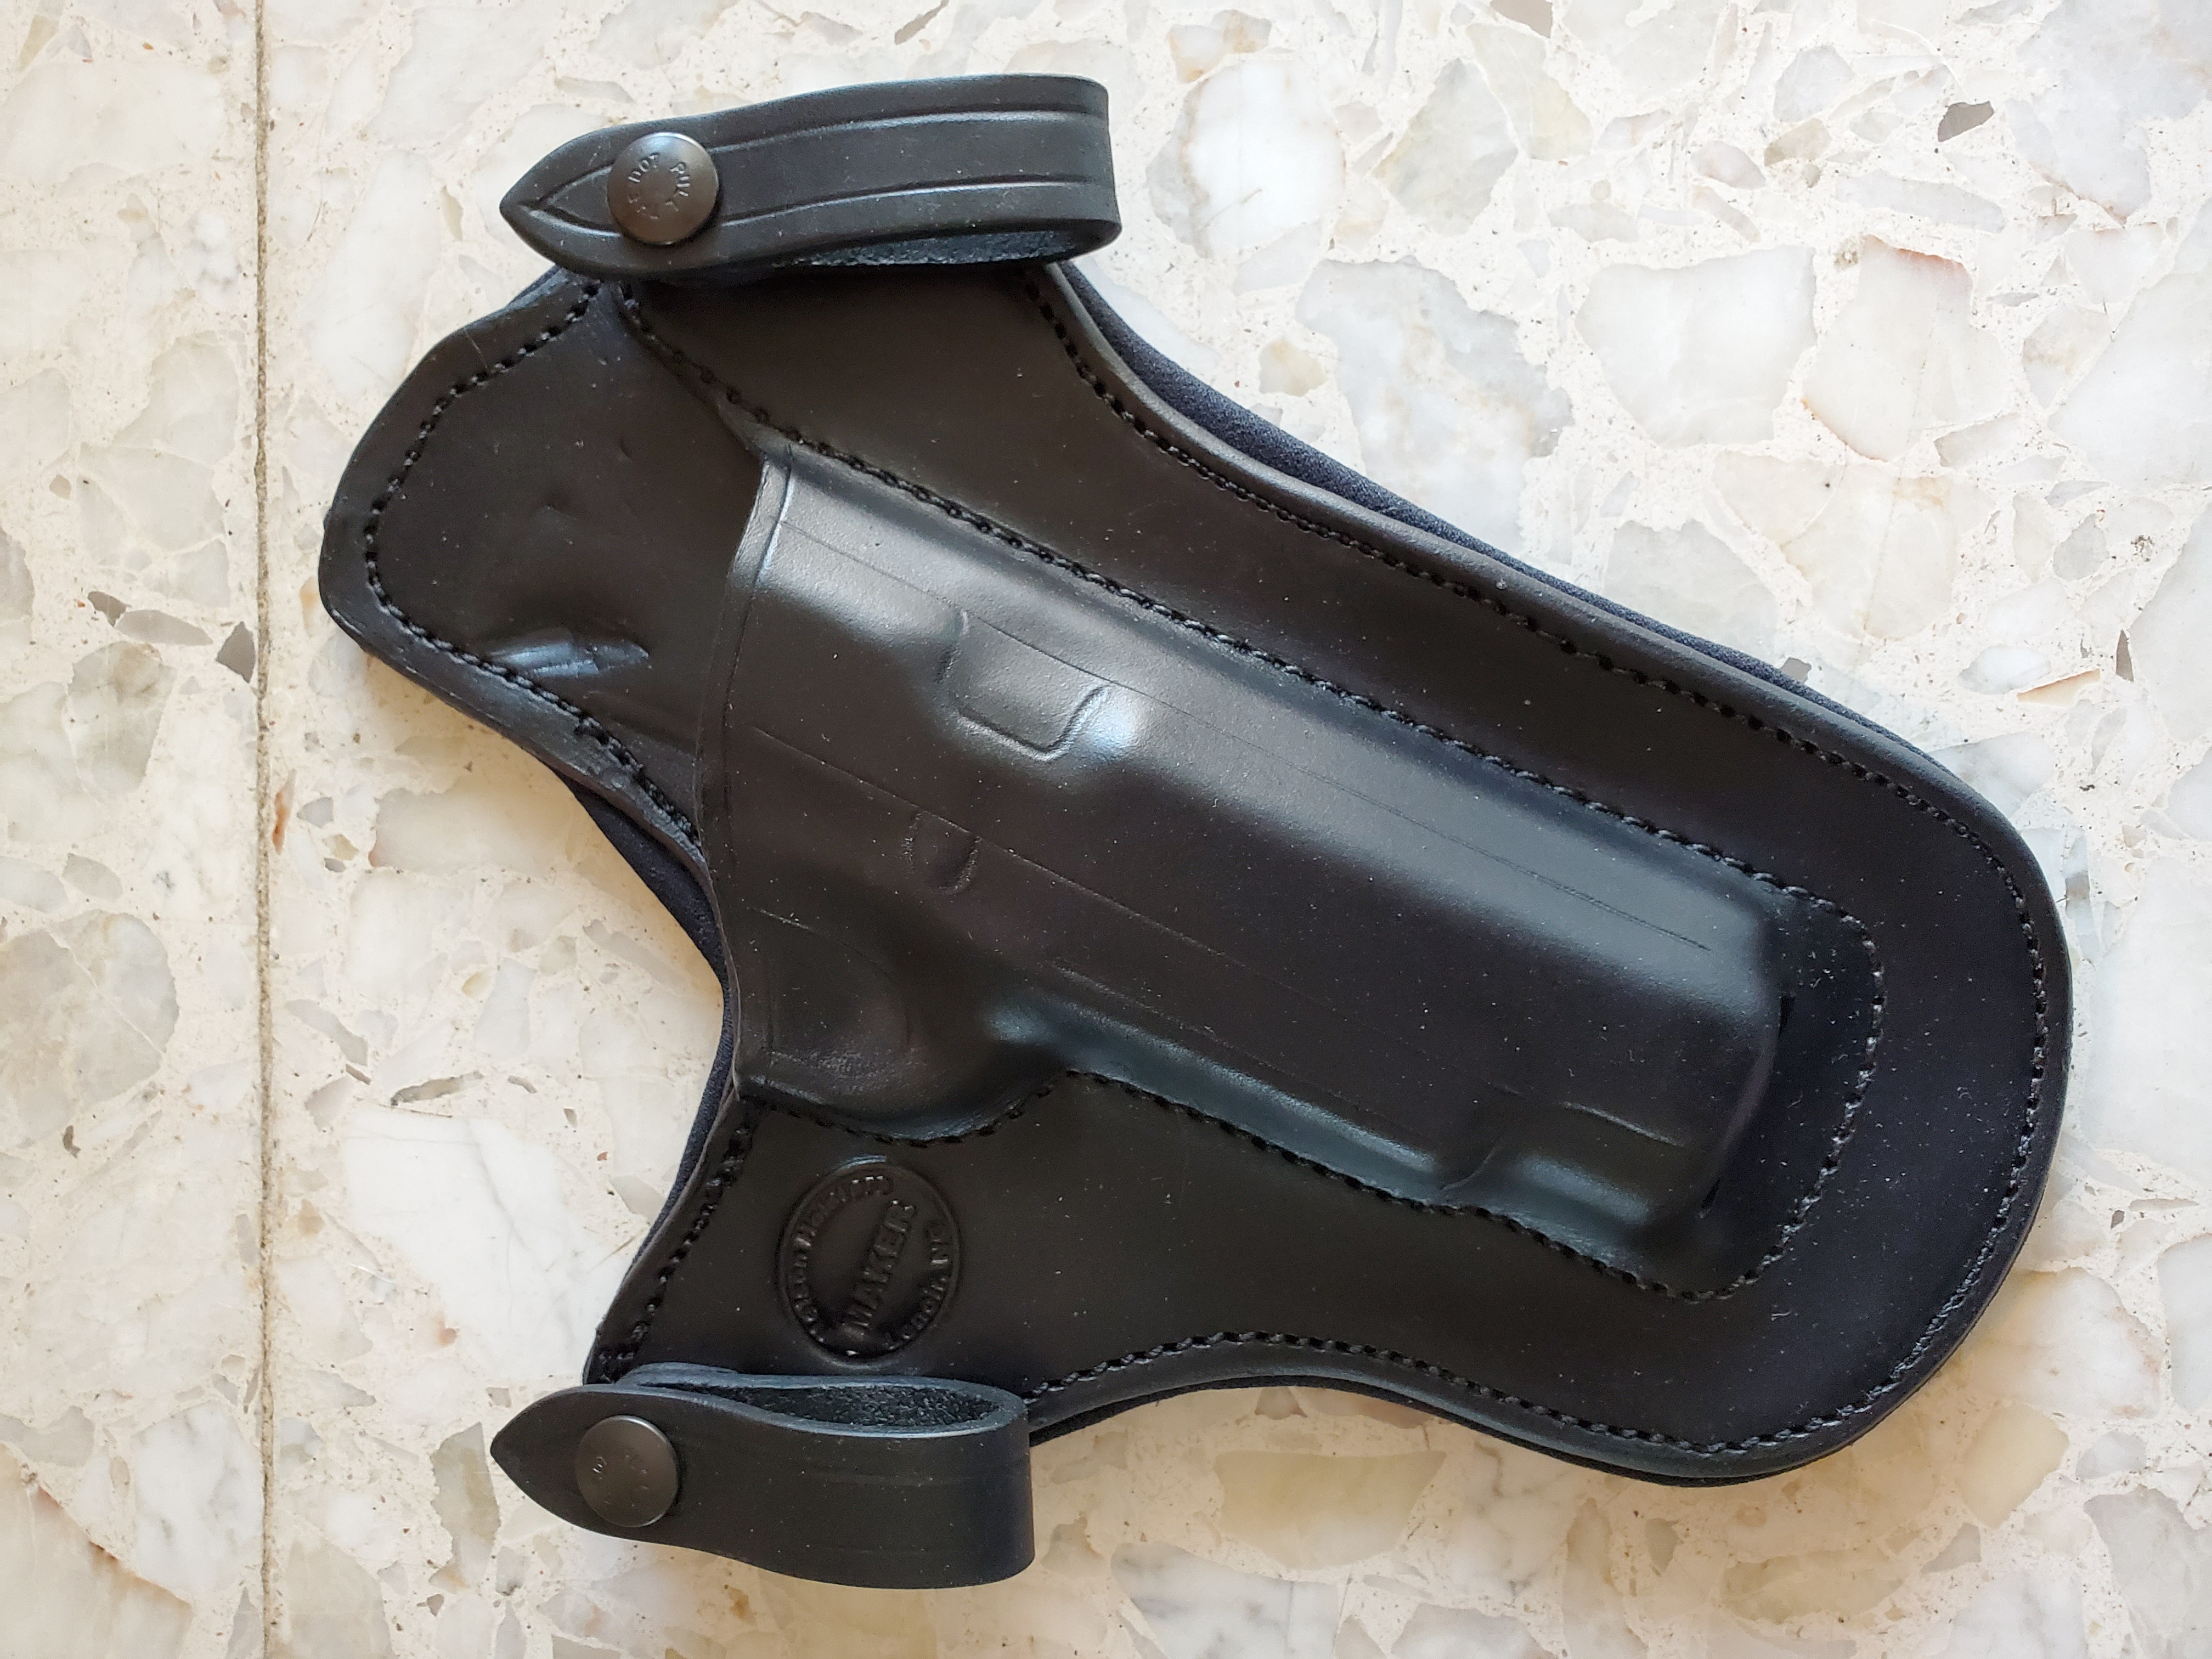 Selling New Nelson Holsters- 10% off Retail and No Wait-20190508_170913.jpg